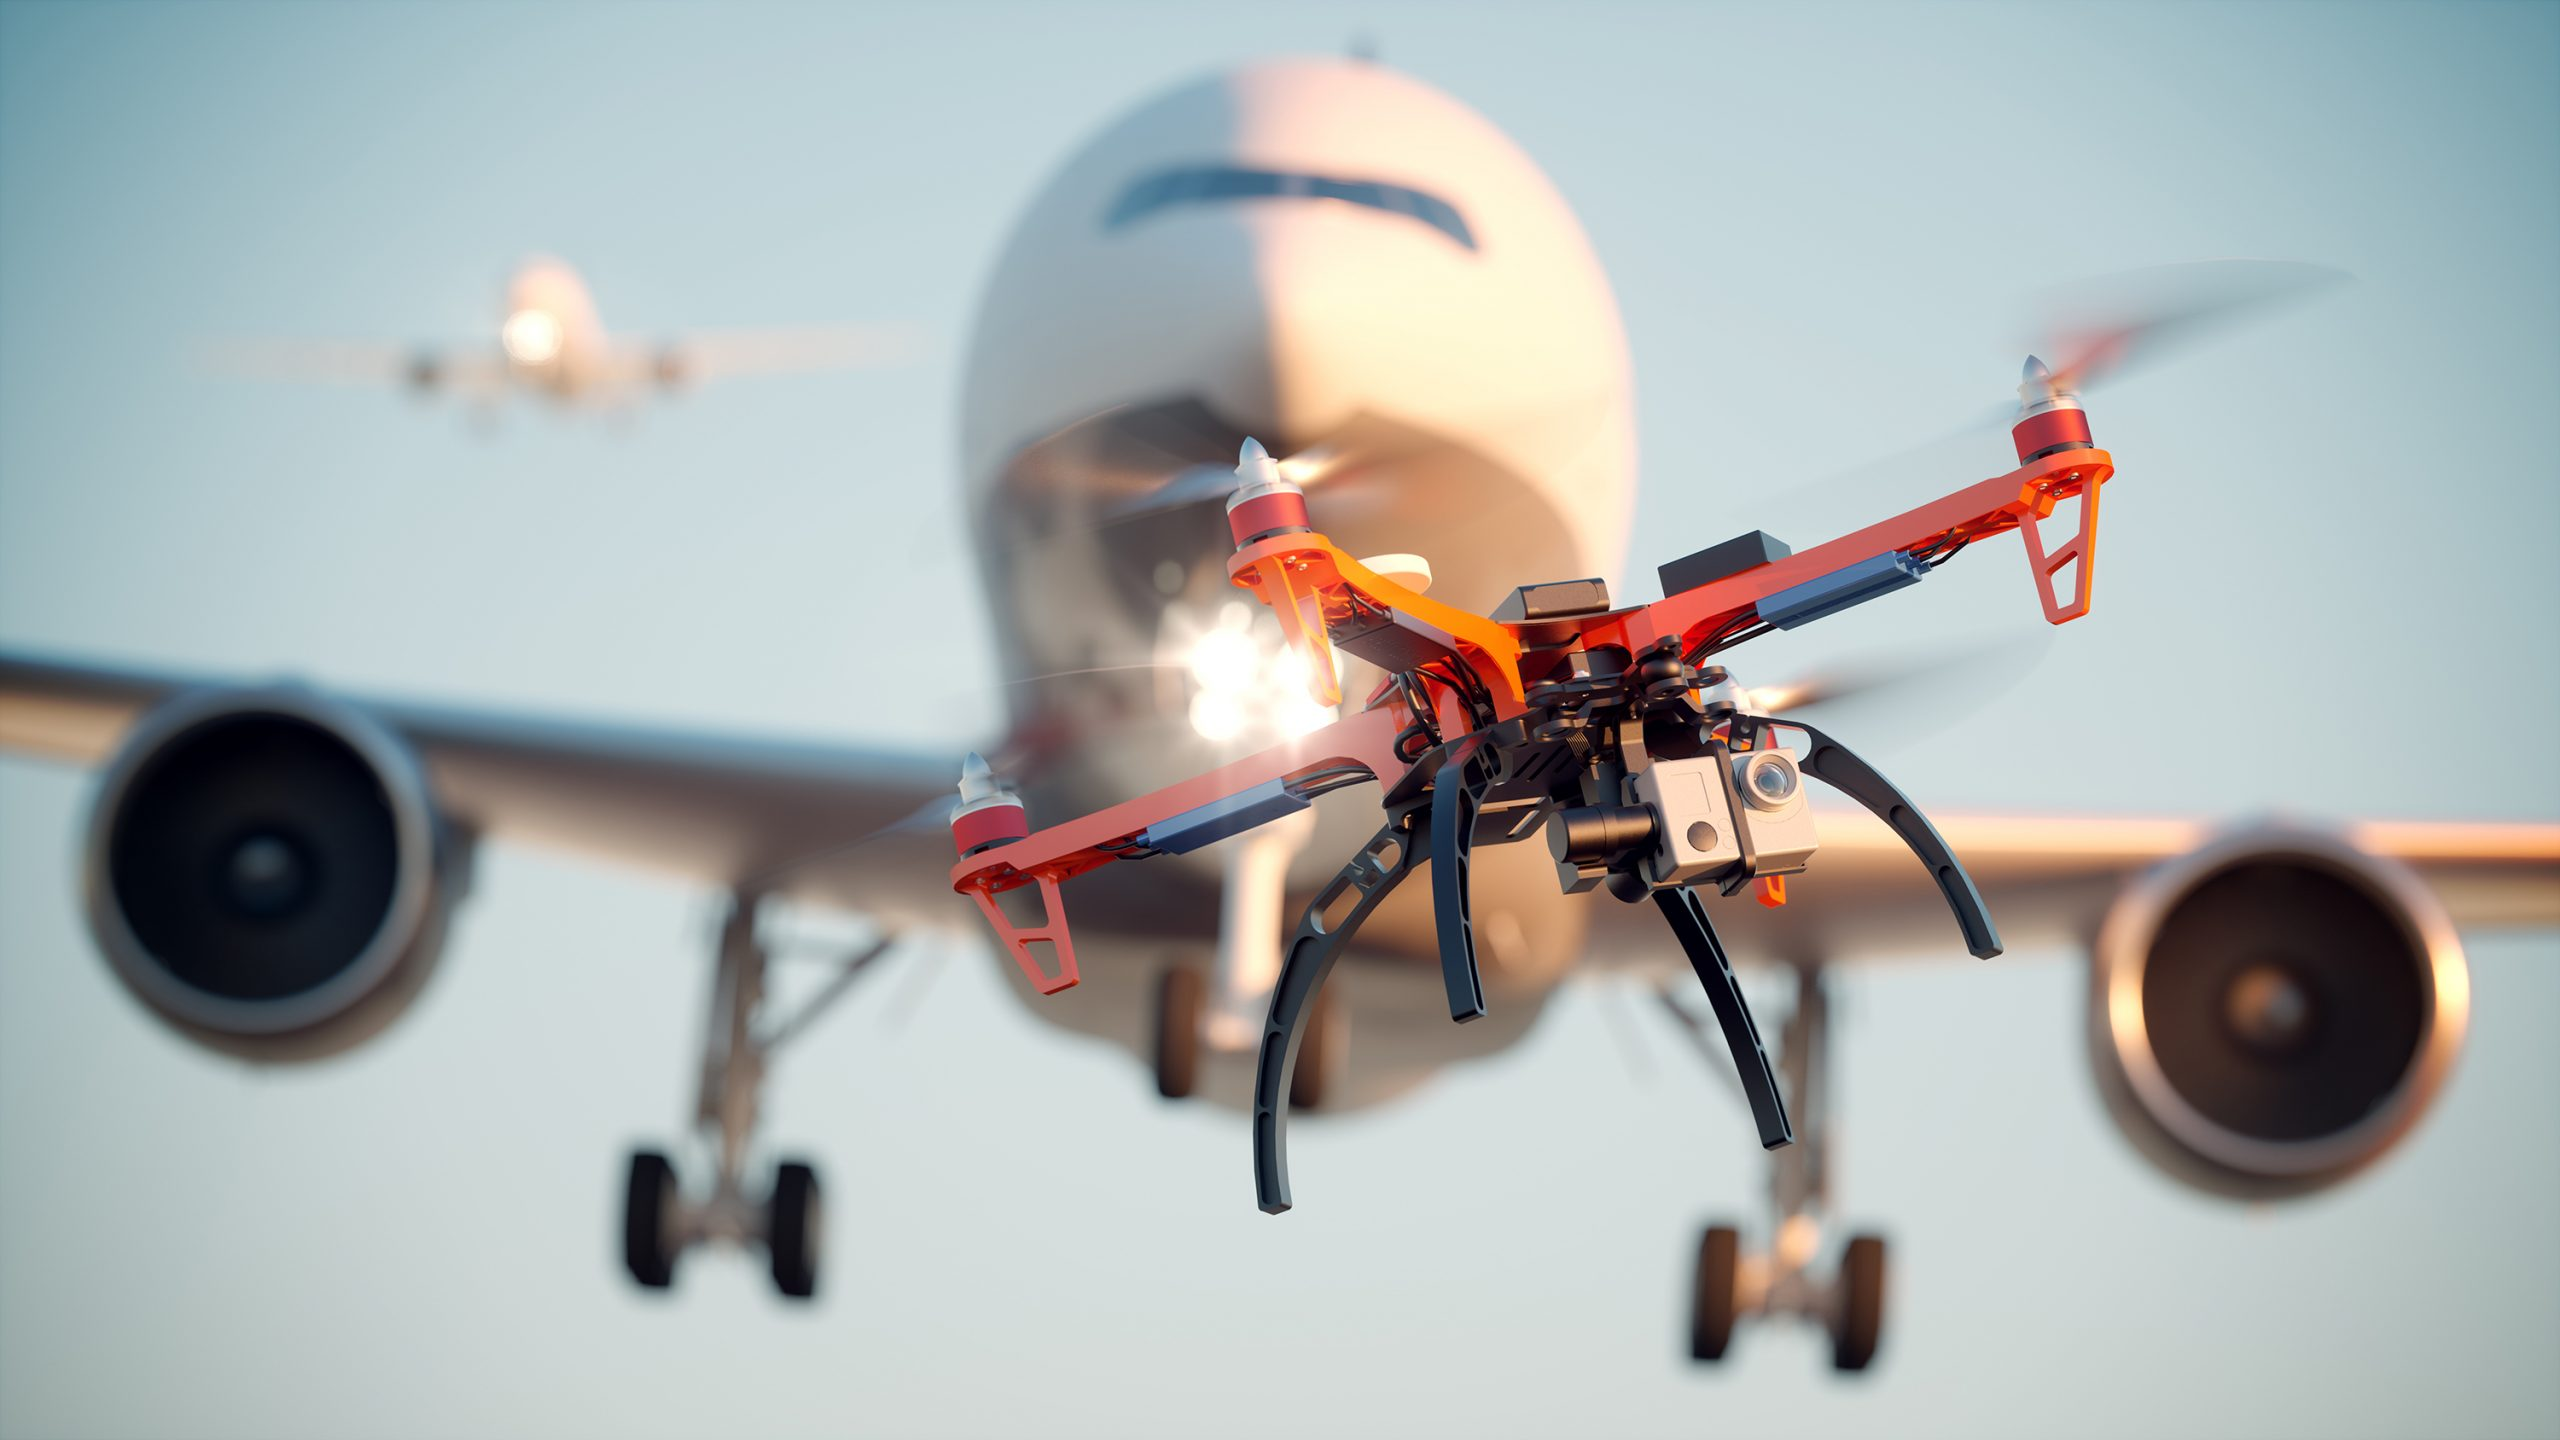 drone-pilot-to-fly-in-the-airspace-under-their-jurisdiction-scaled